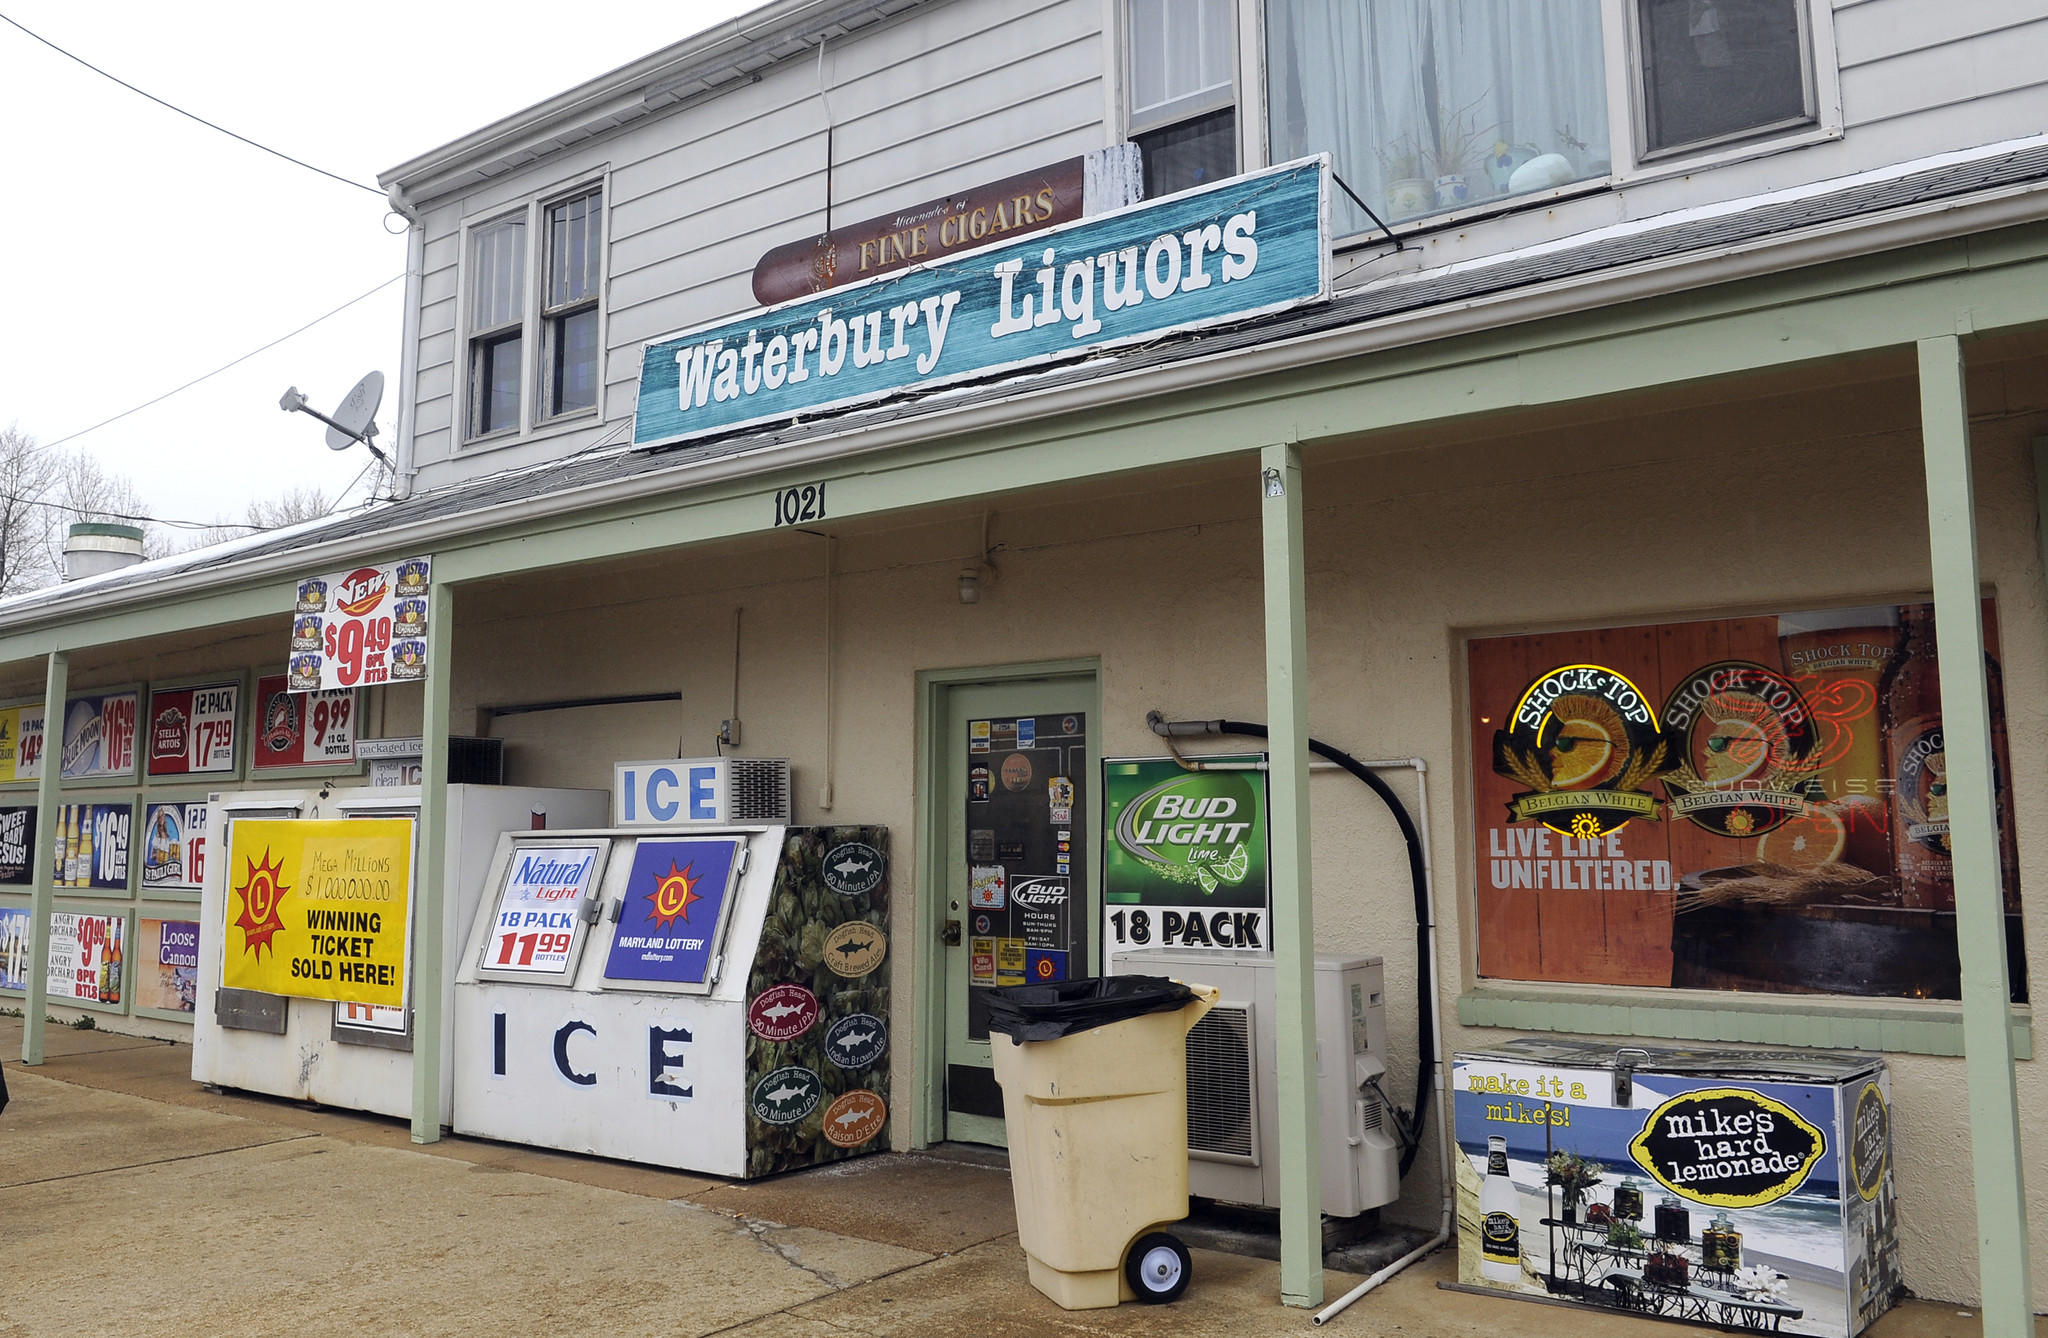 This is Waterbury Liquors in Crownville, where a $1 million lottery ticket was sold.